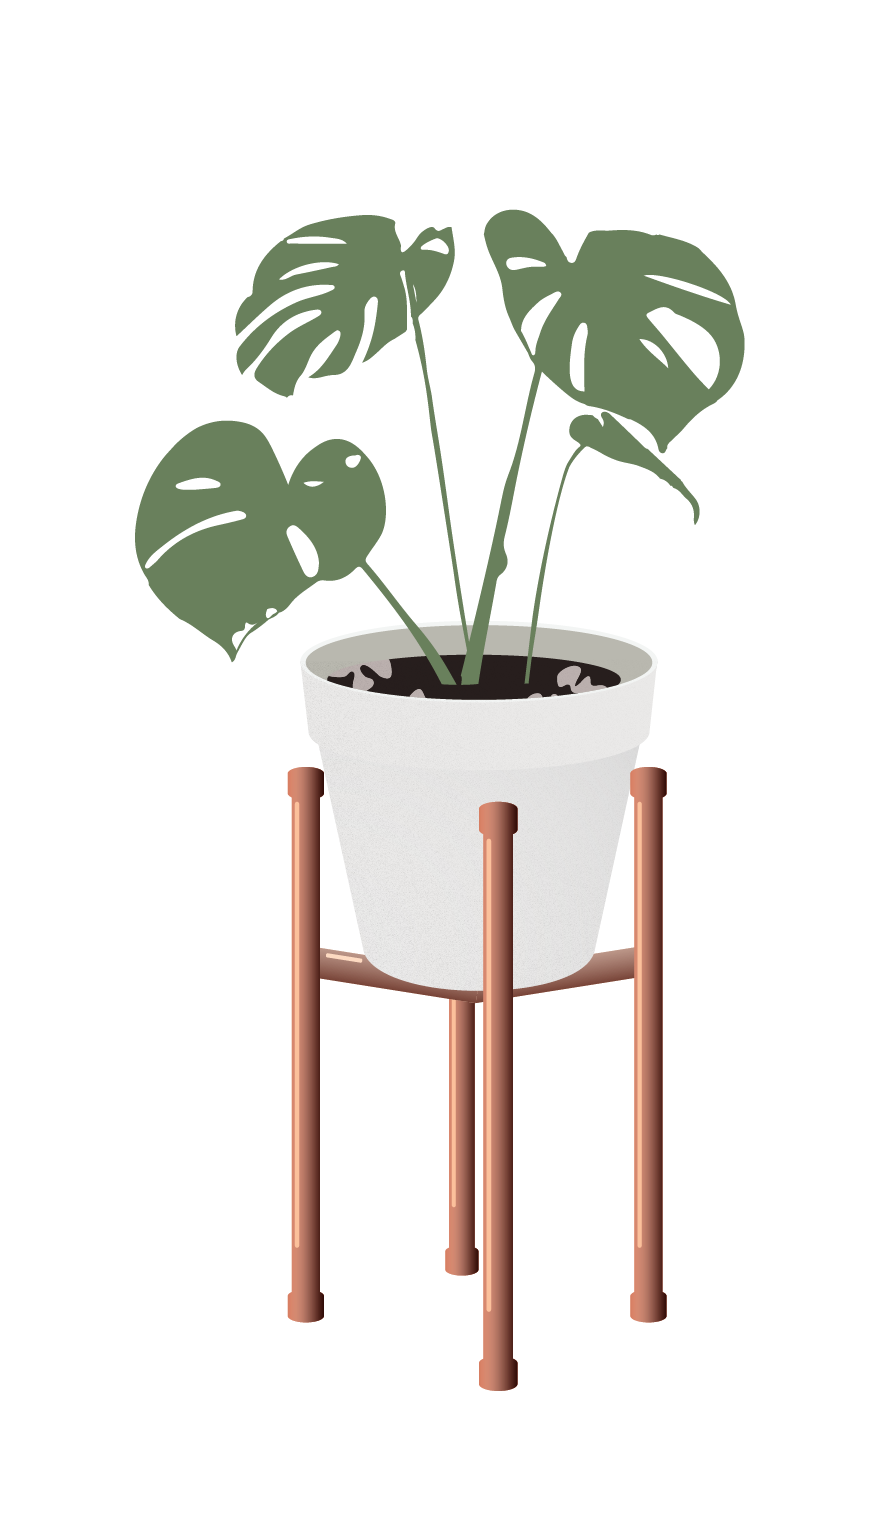 Vector Indoor Plants For More Https Www Toffu Co Download Link Https Www Toffu Co Downloads Plant Art Plant Drawing Architecture Drawing